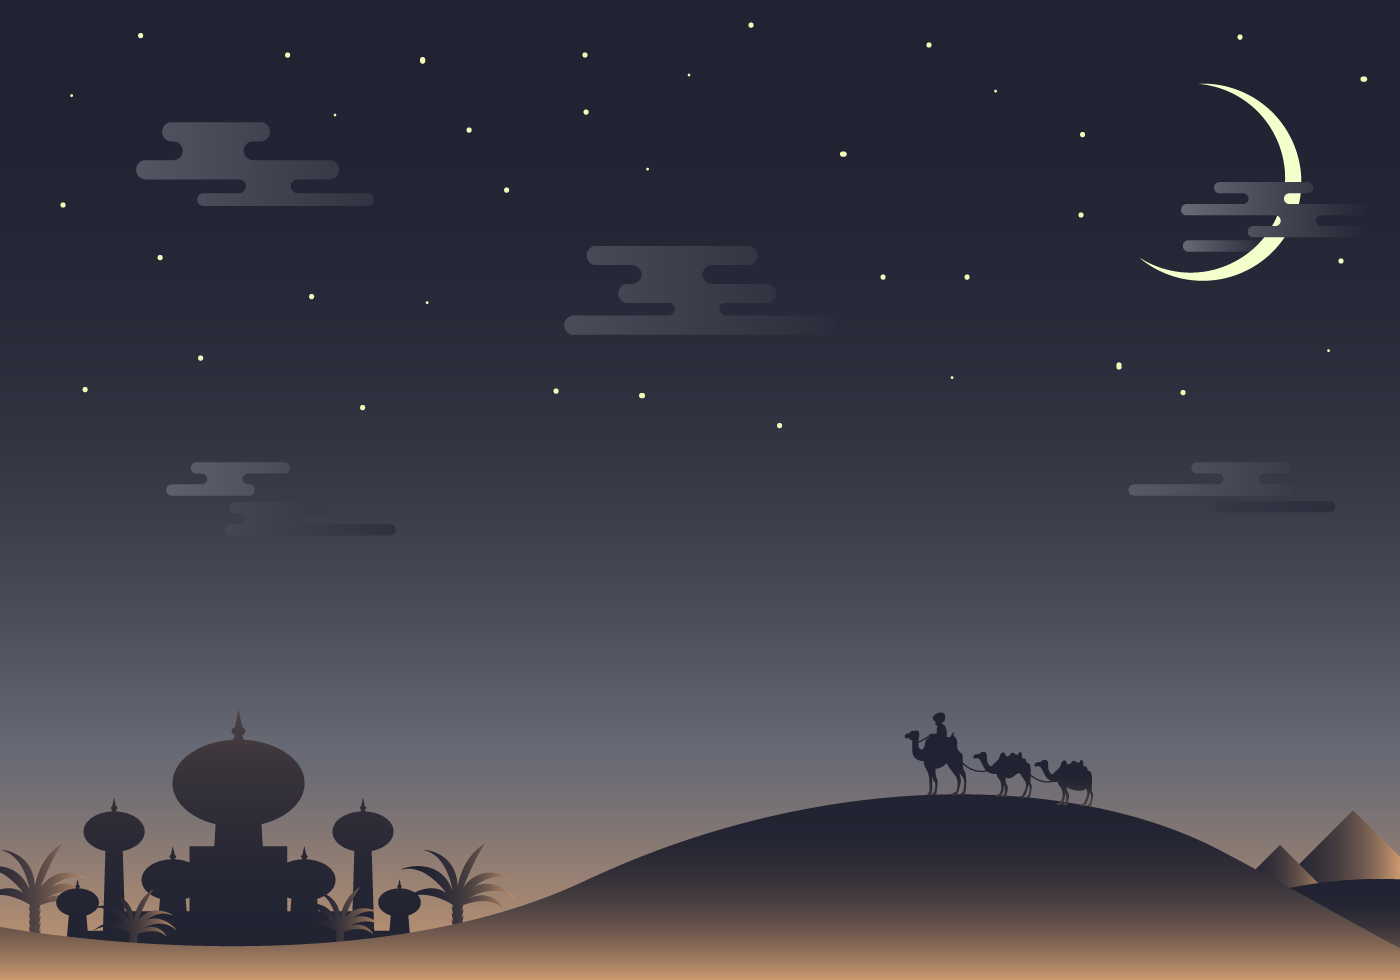 Free Arabian Nights Vector - Download Free Vector Art, Stock Graphics ...